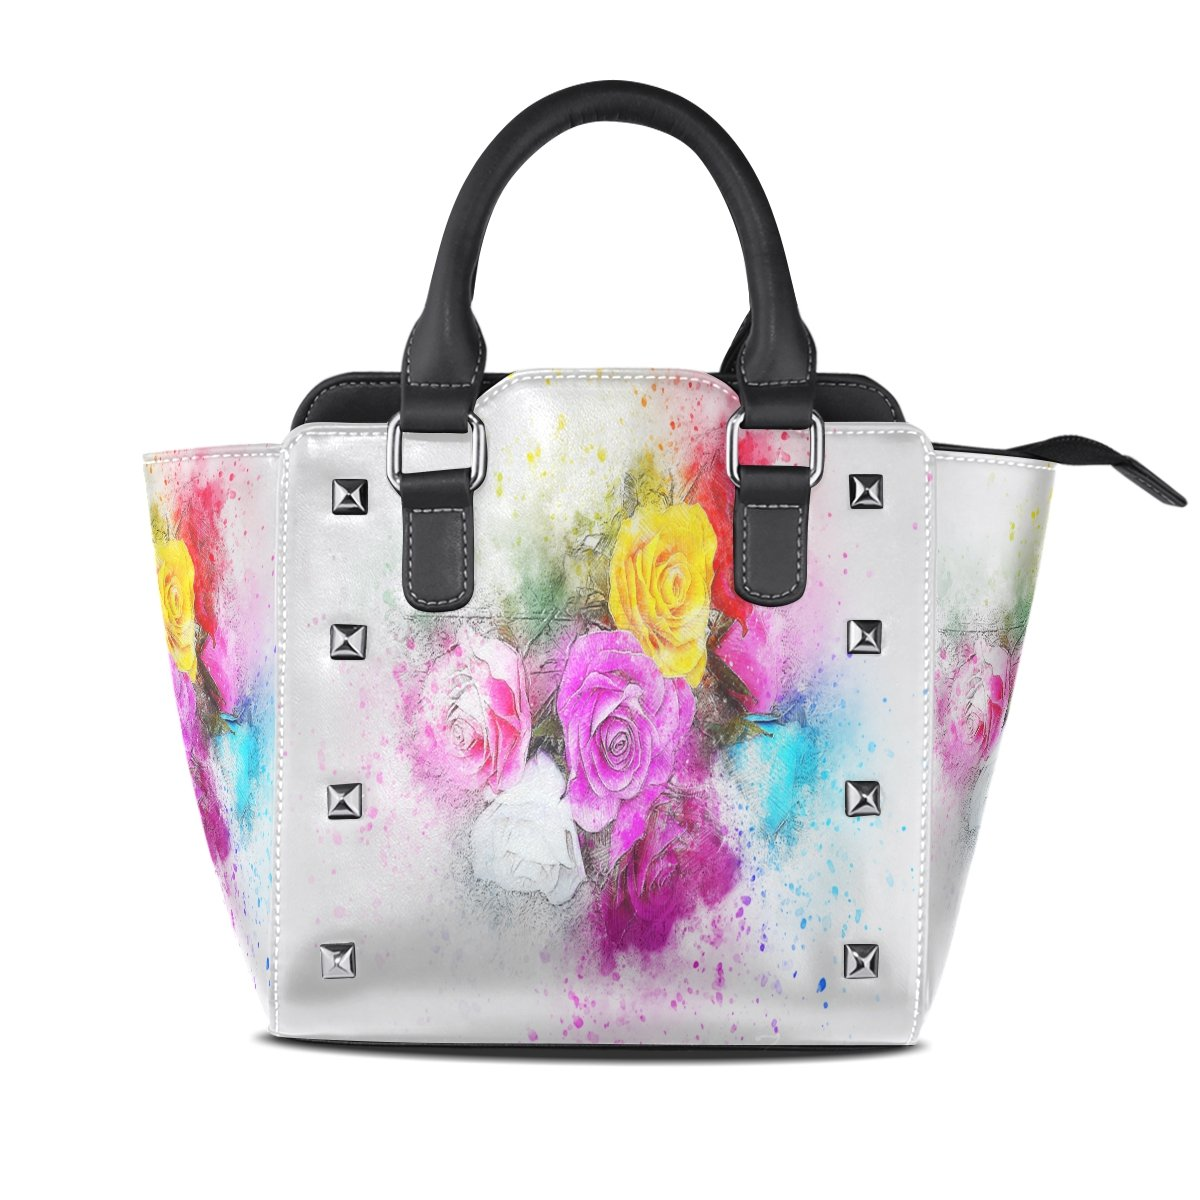 Womens Genuine Leather Hangbags Tote Bags Seven Colour Flowers Purse Shoulder Bags